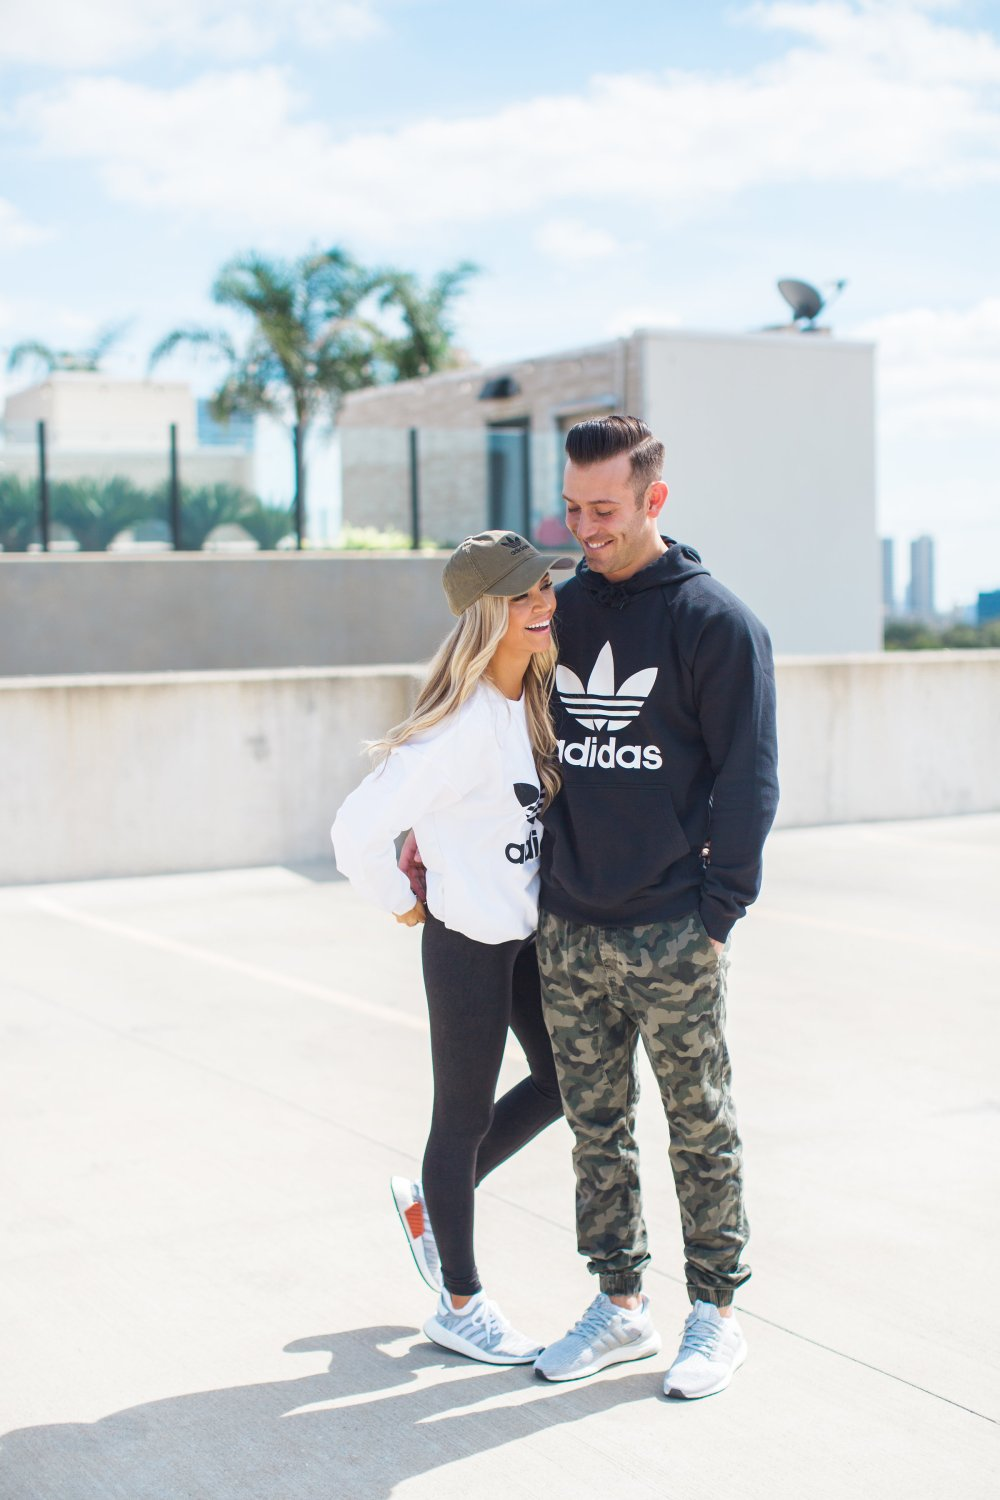 Adidas active wear for men and women! Part of the perfect Holiday Gift Guide for Men!